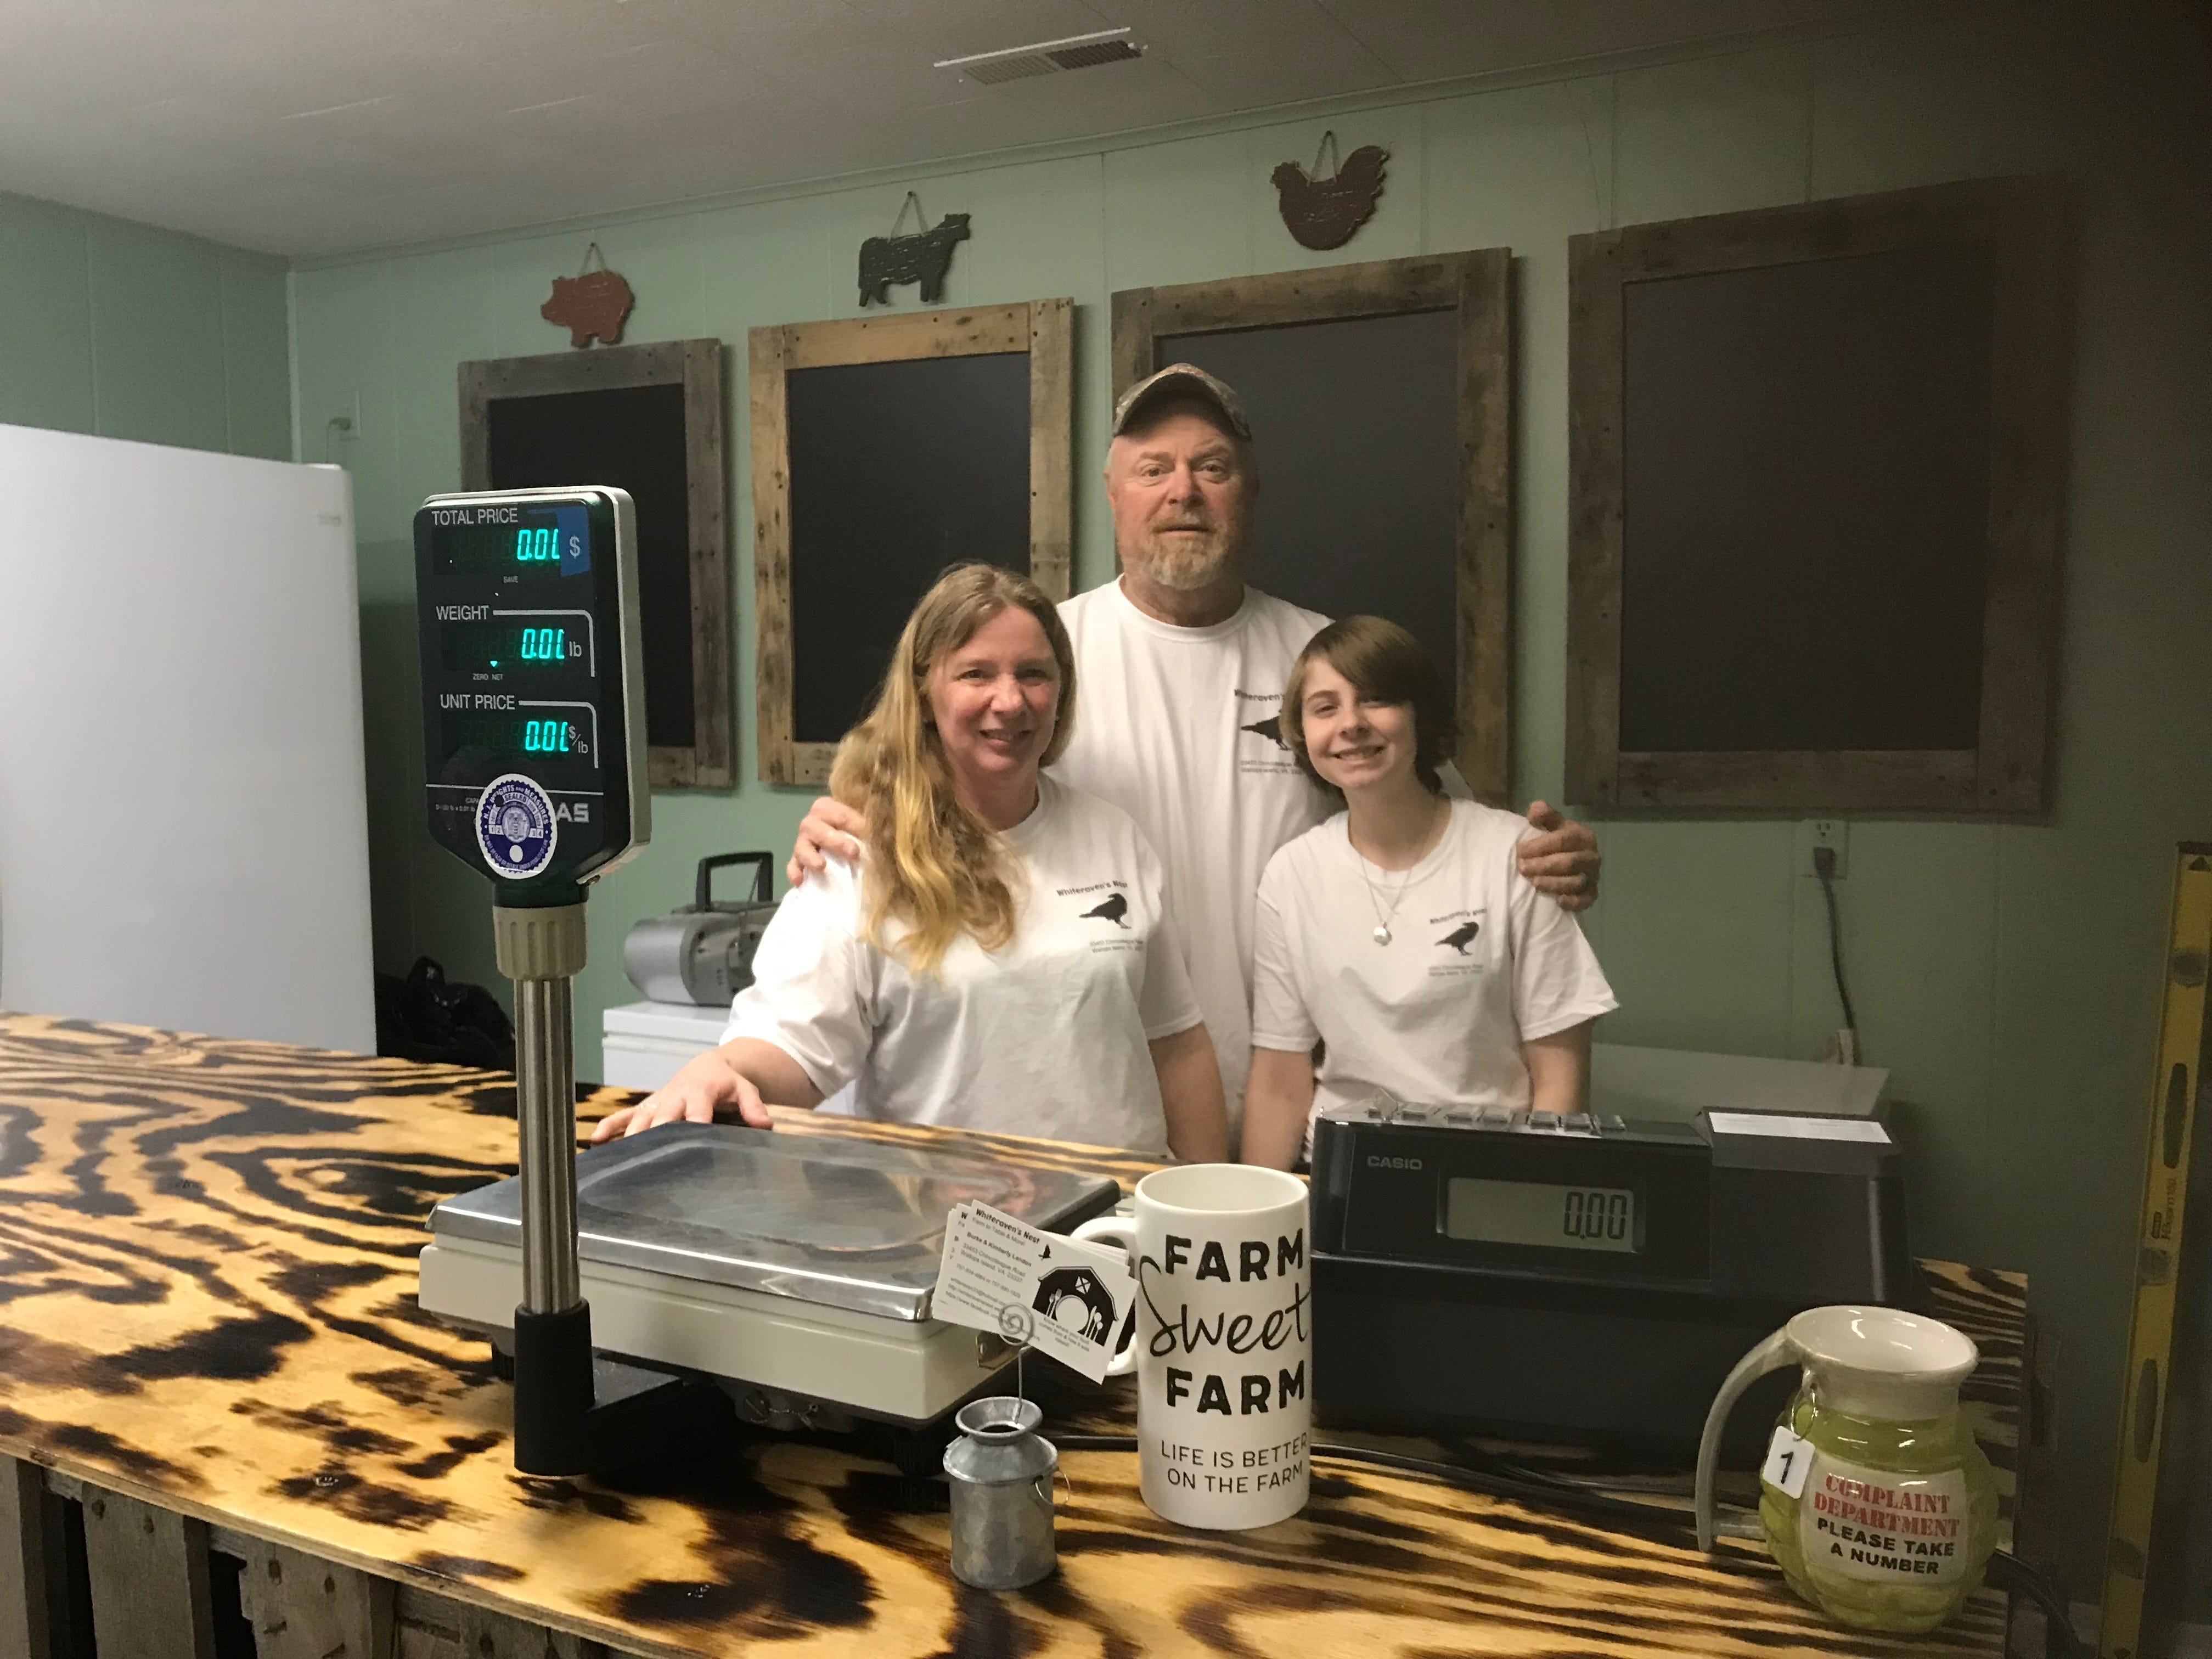 Kimberly and Burke Landon and daughter Selena stand behind the counter of their new farm-to-table store on Chincoteague Road in Wallops Island, Virginia on Friday, March 8, 2019.